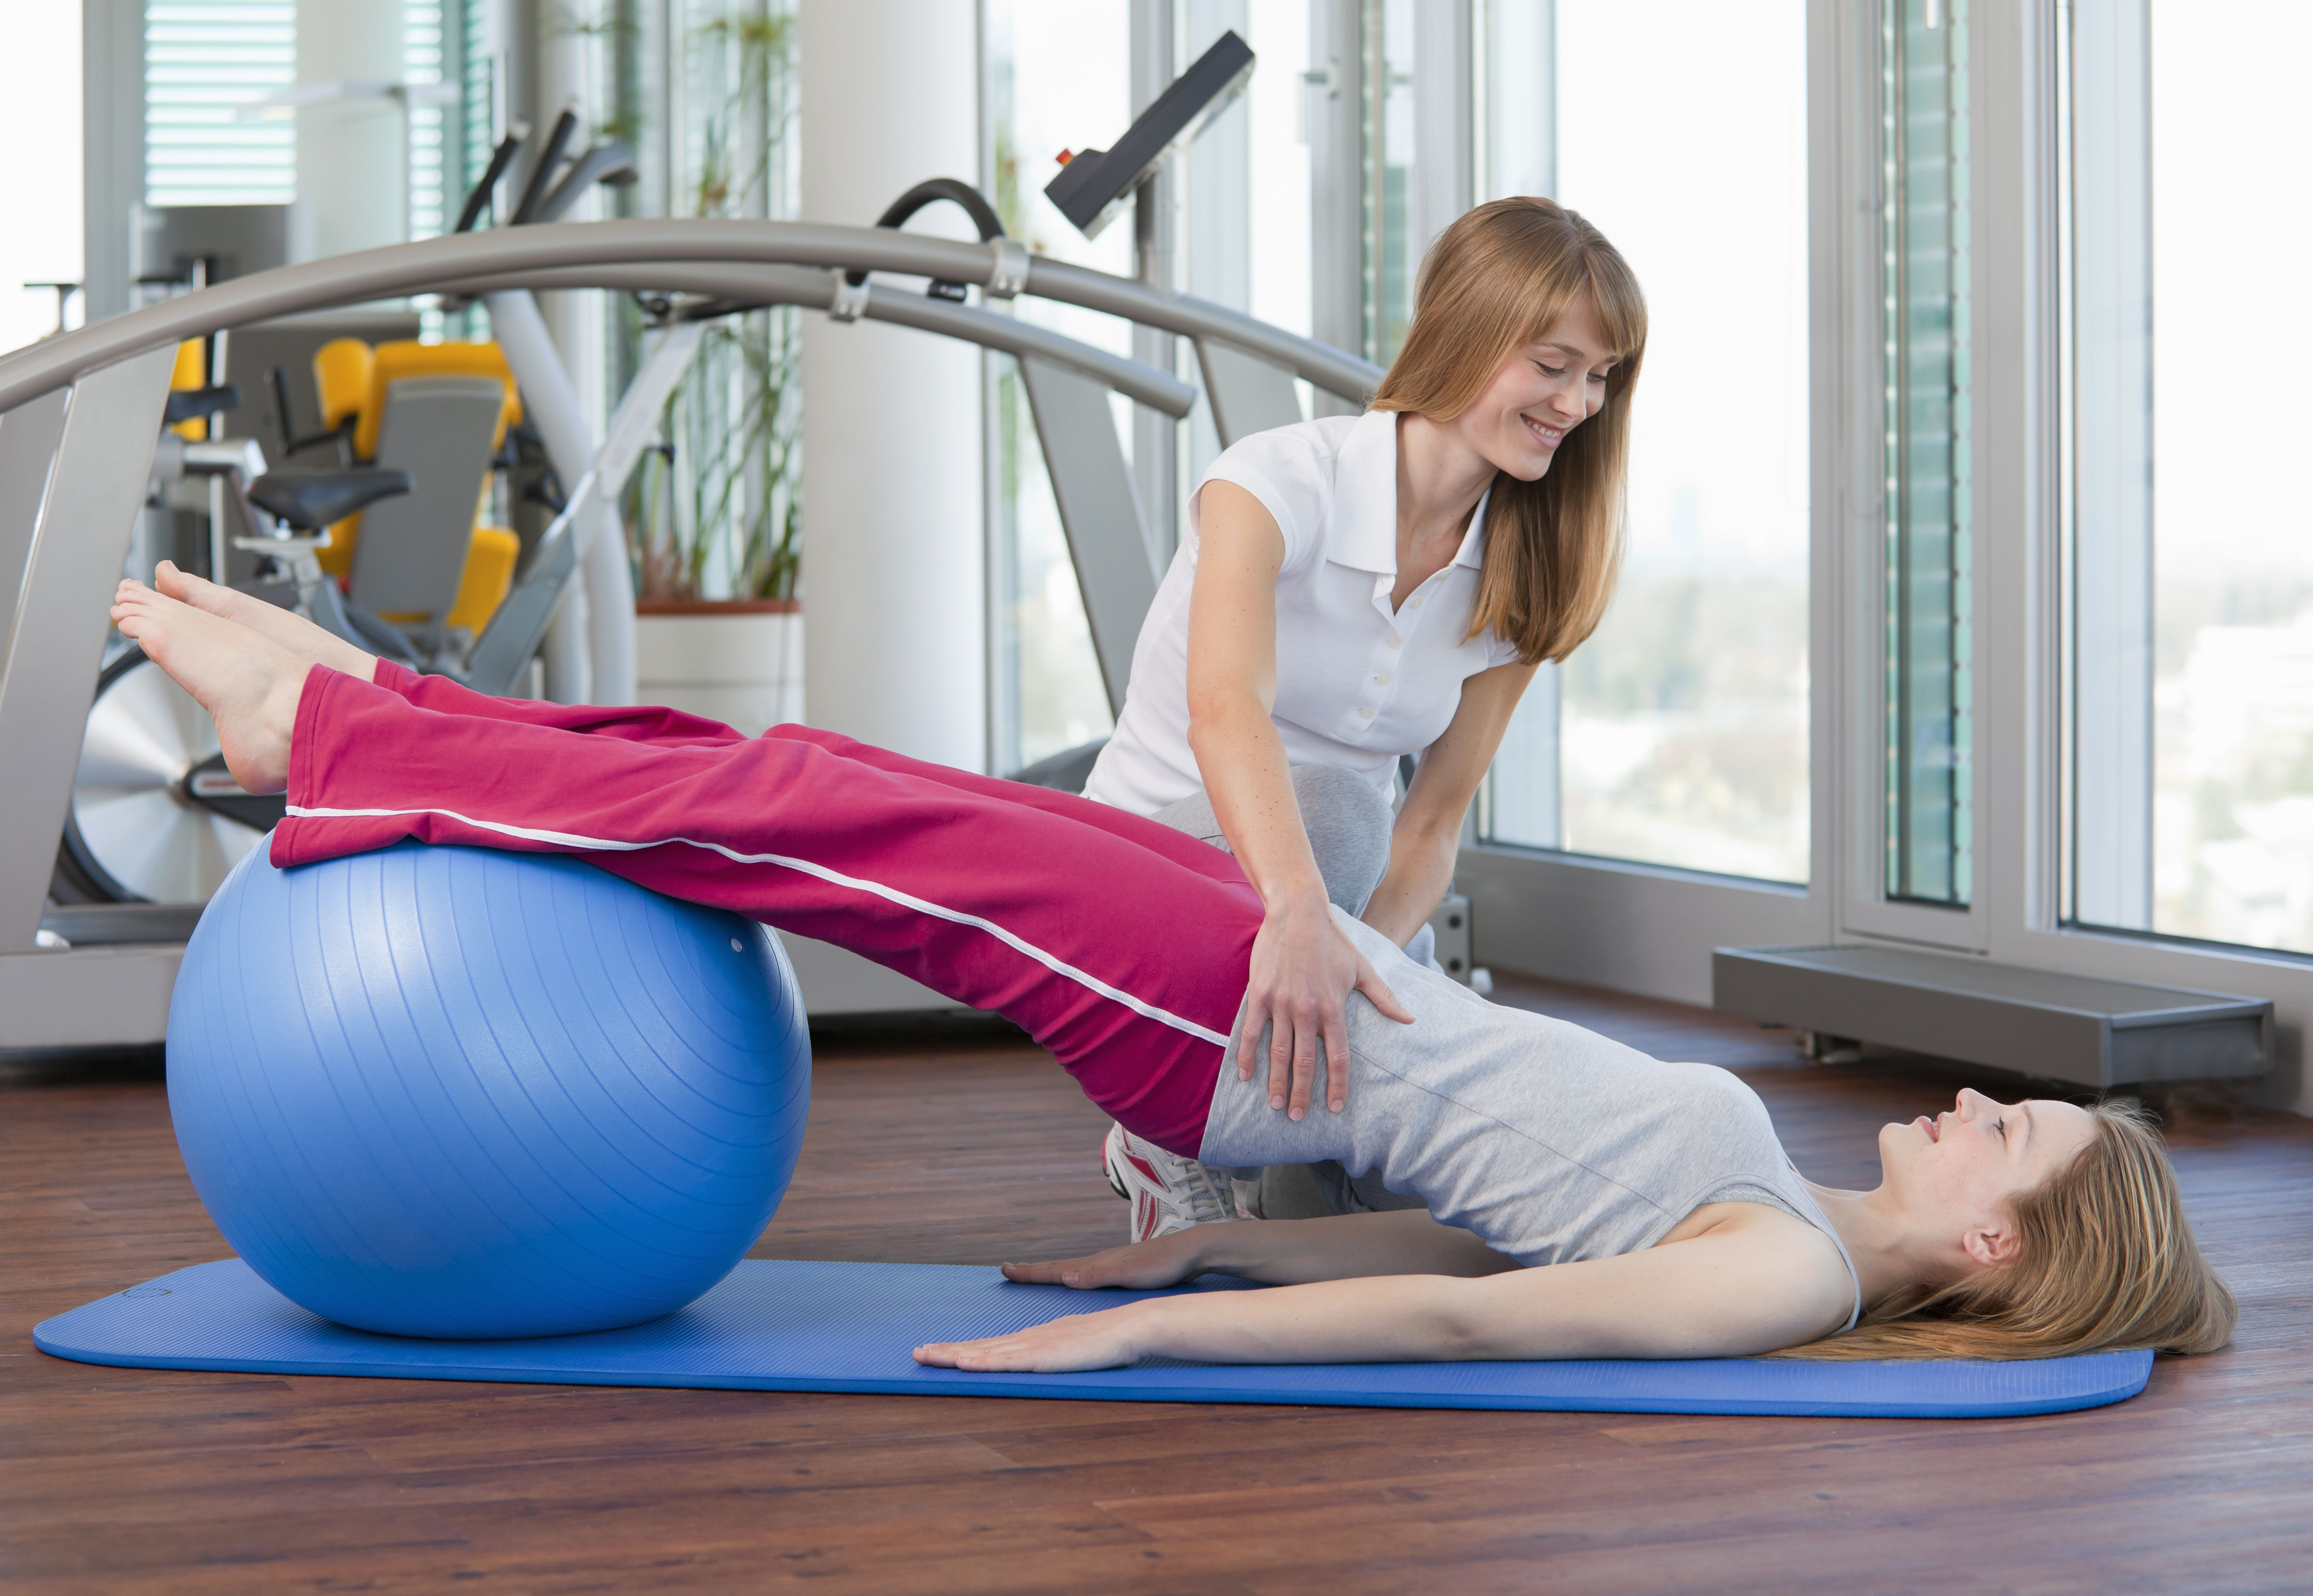 Physical Therapy Exercises for Hip Impingement